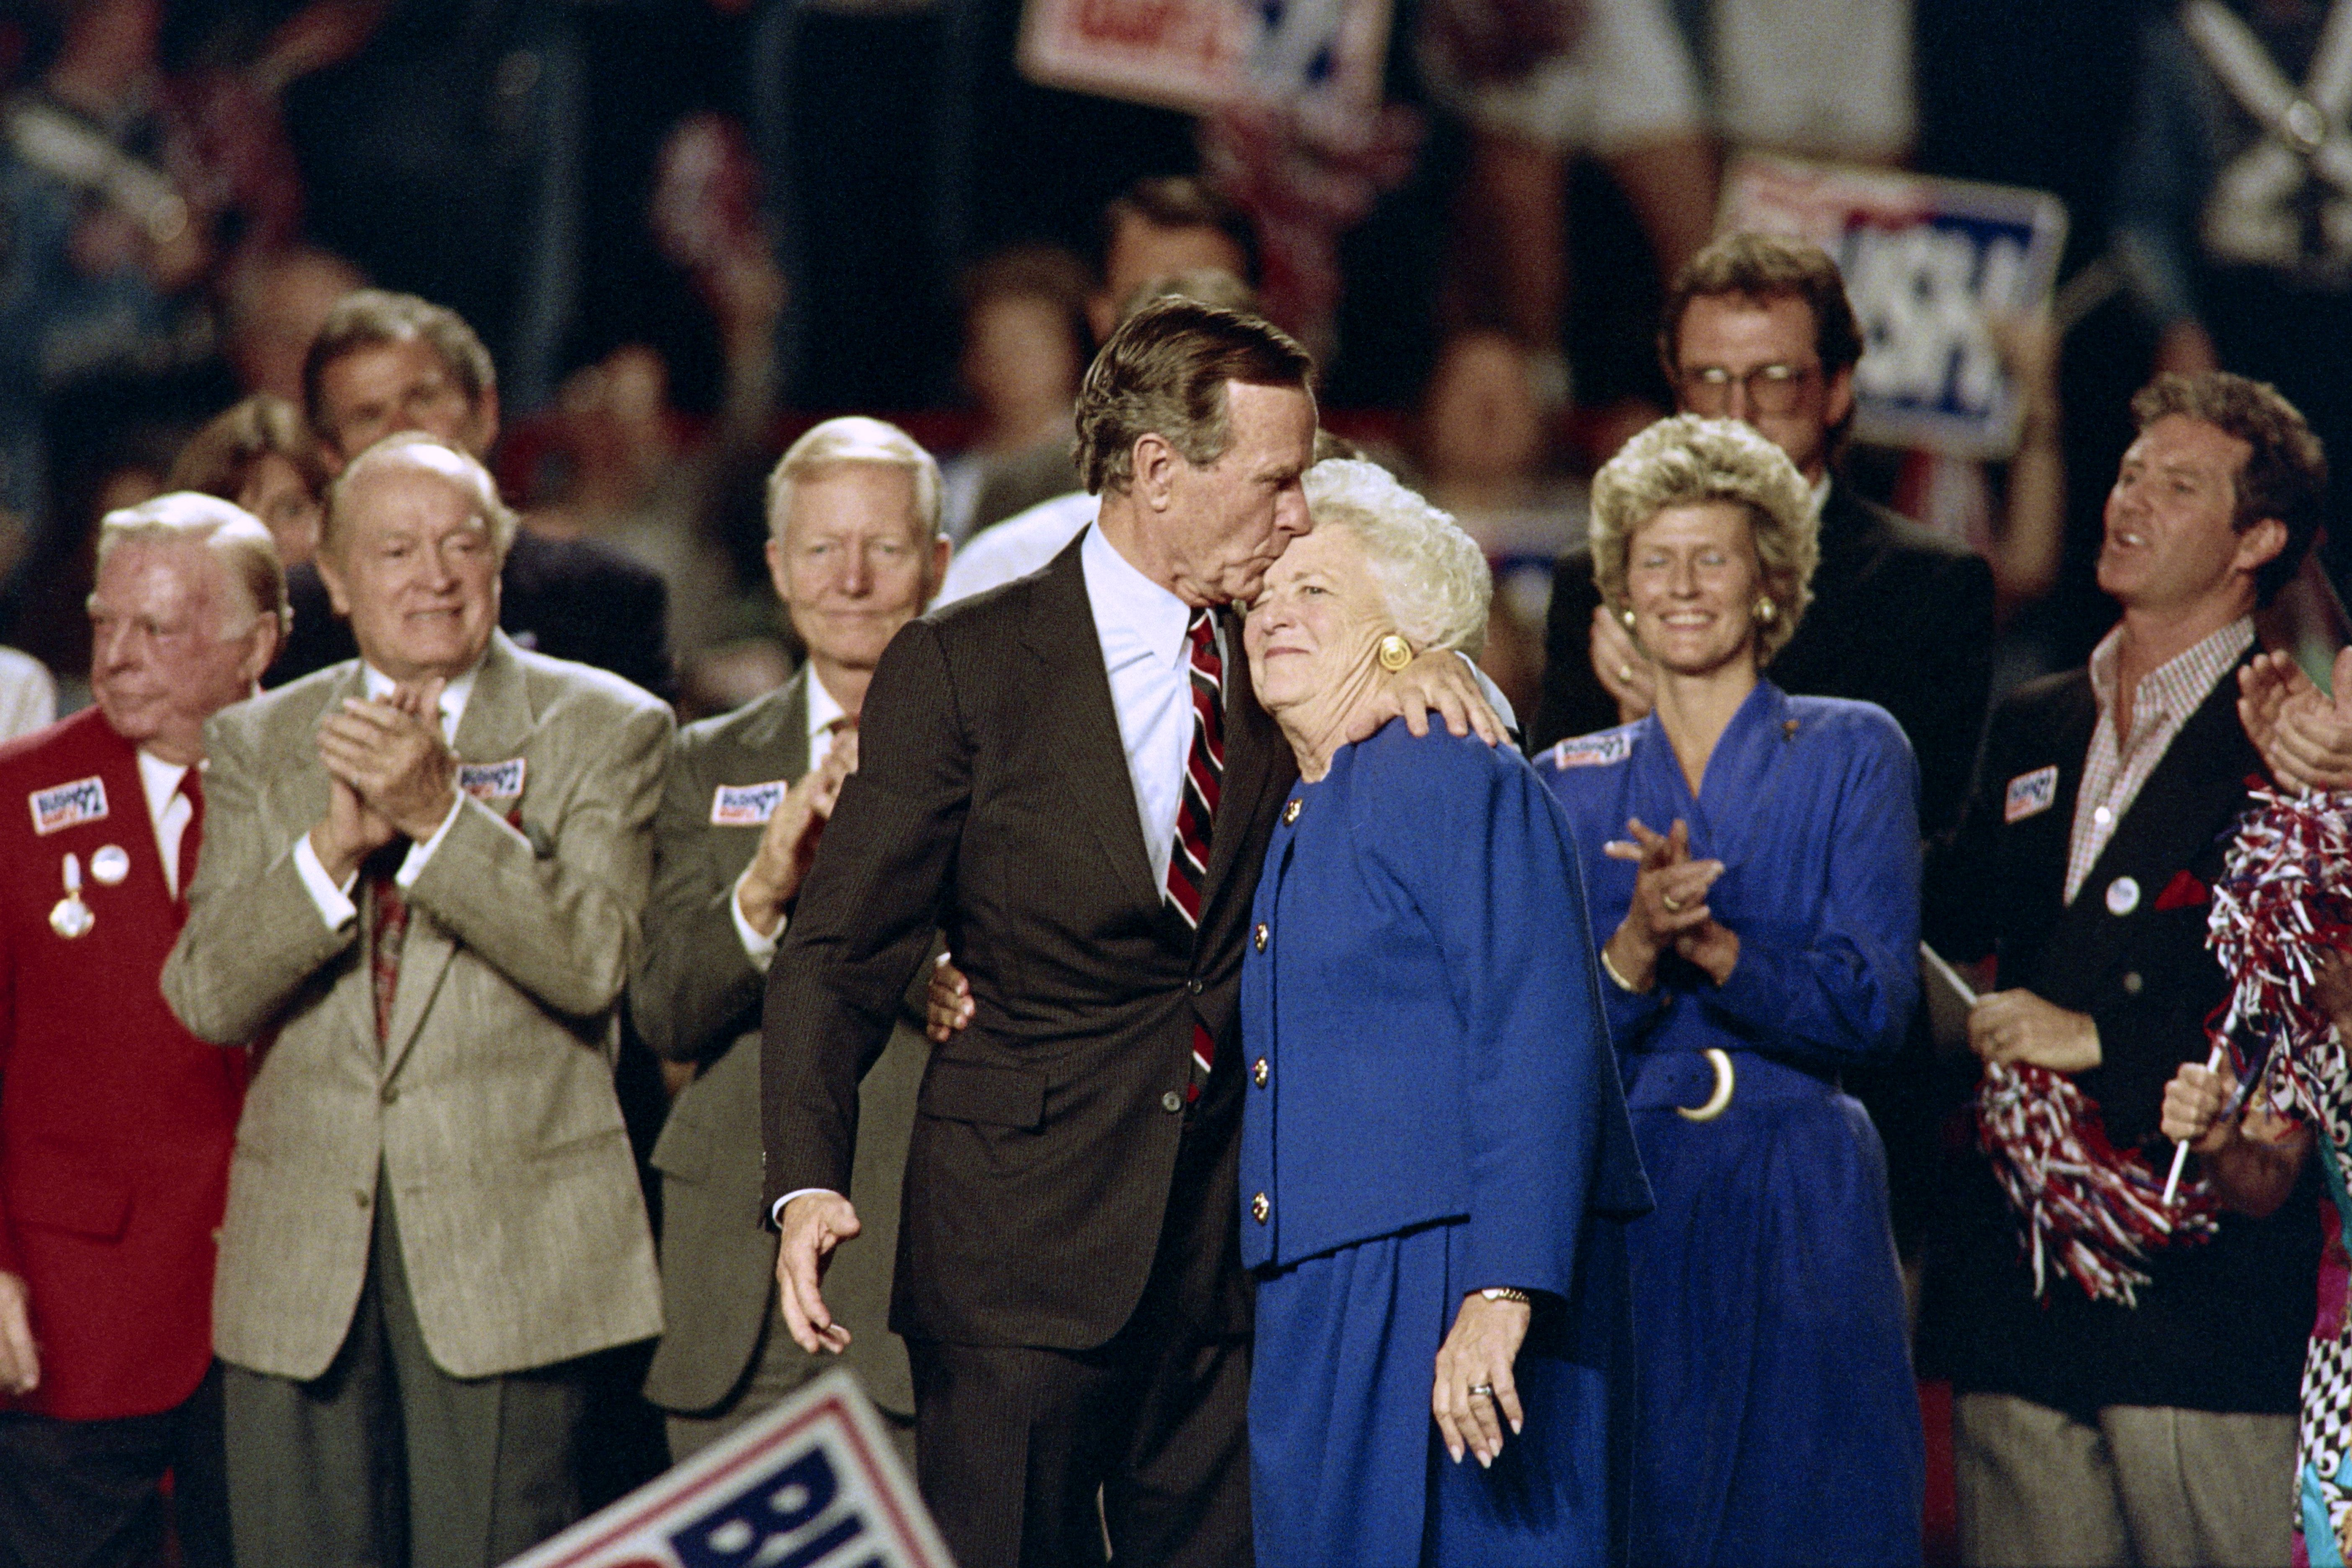 US President George Bush kisses his wife Barbara at the end of a rally held at the Astro Arena on November 2, 1992 on the eve of the 1992 presidential election. President Bush trails Democratic candidate Bill Clinton in pre-election polls. AFP PHOTO EUGENE GARCIA